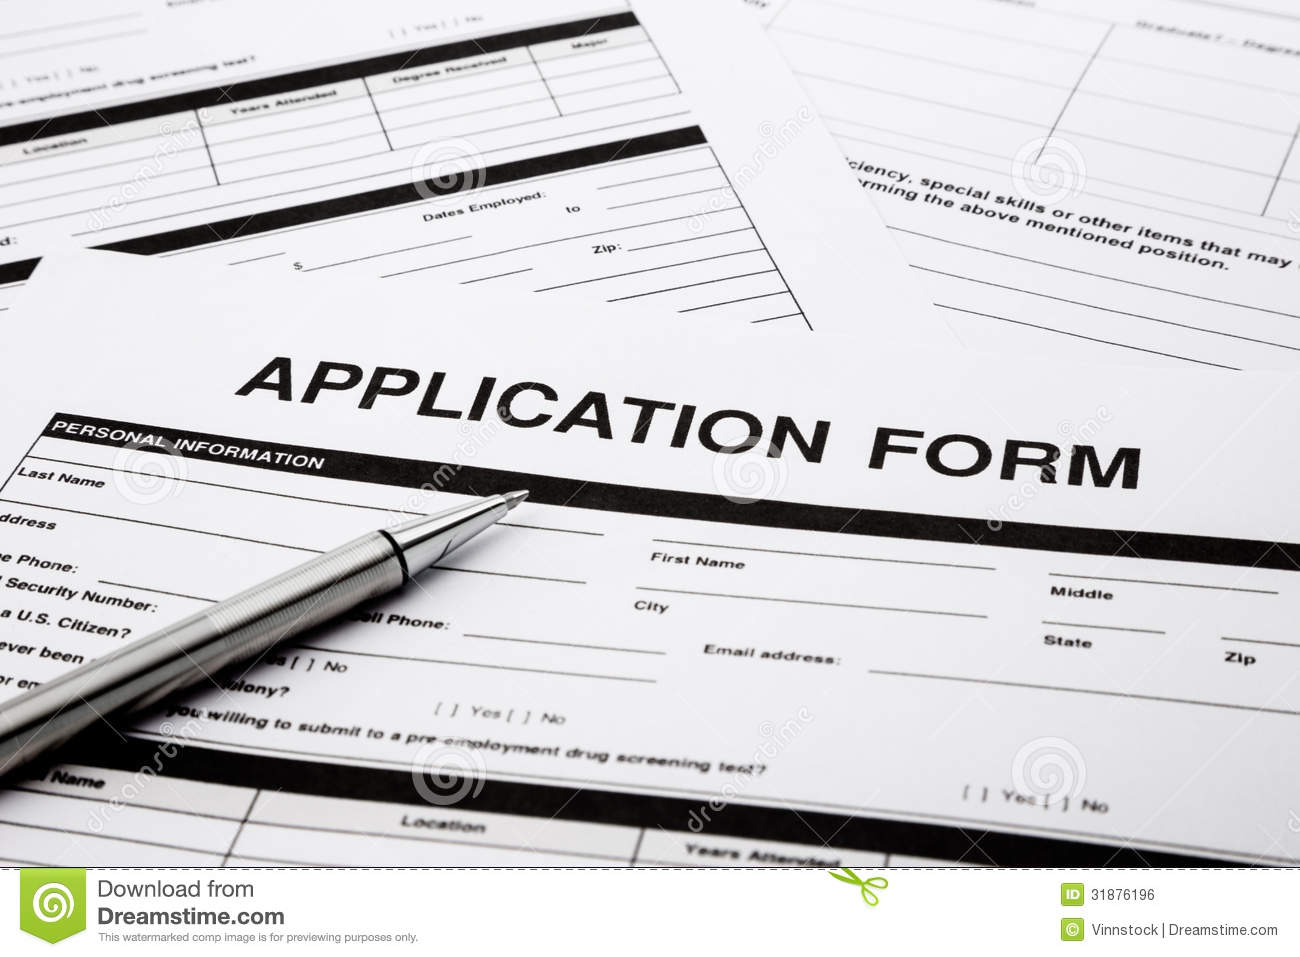 job application form online resume example job application form online printable job application forms online employment application form human resources and